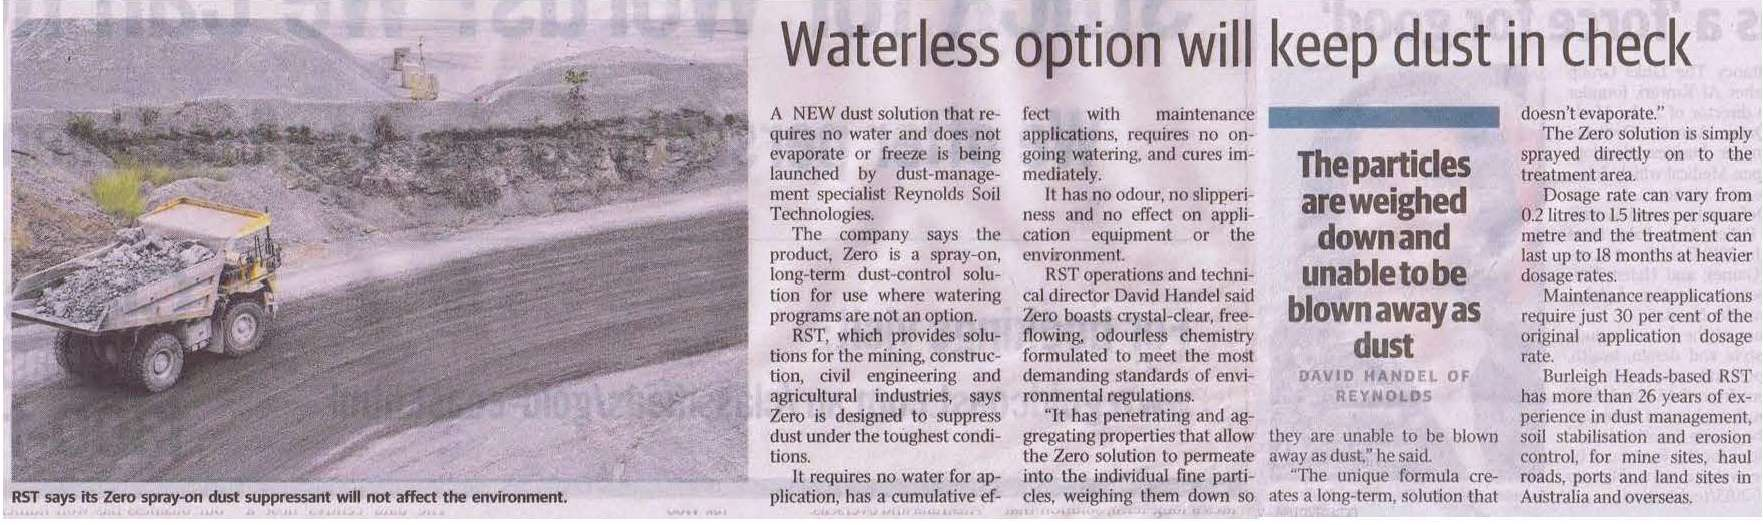 Waterless option will keep dust in check